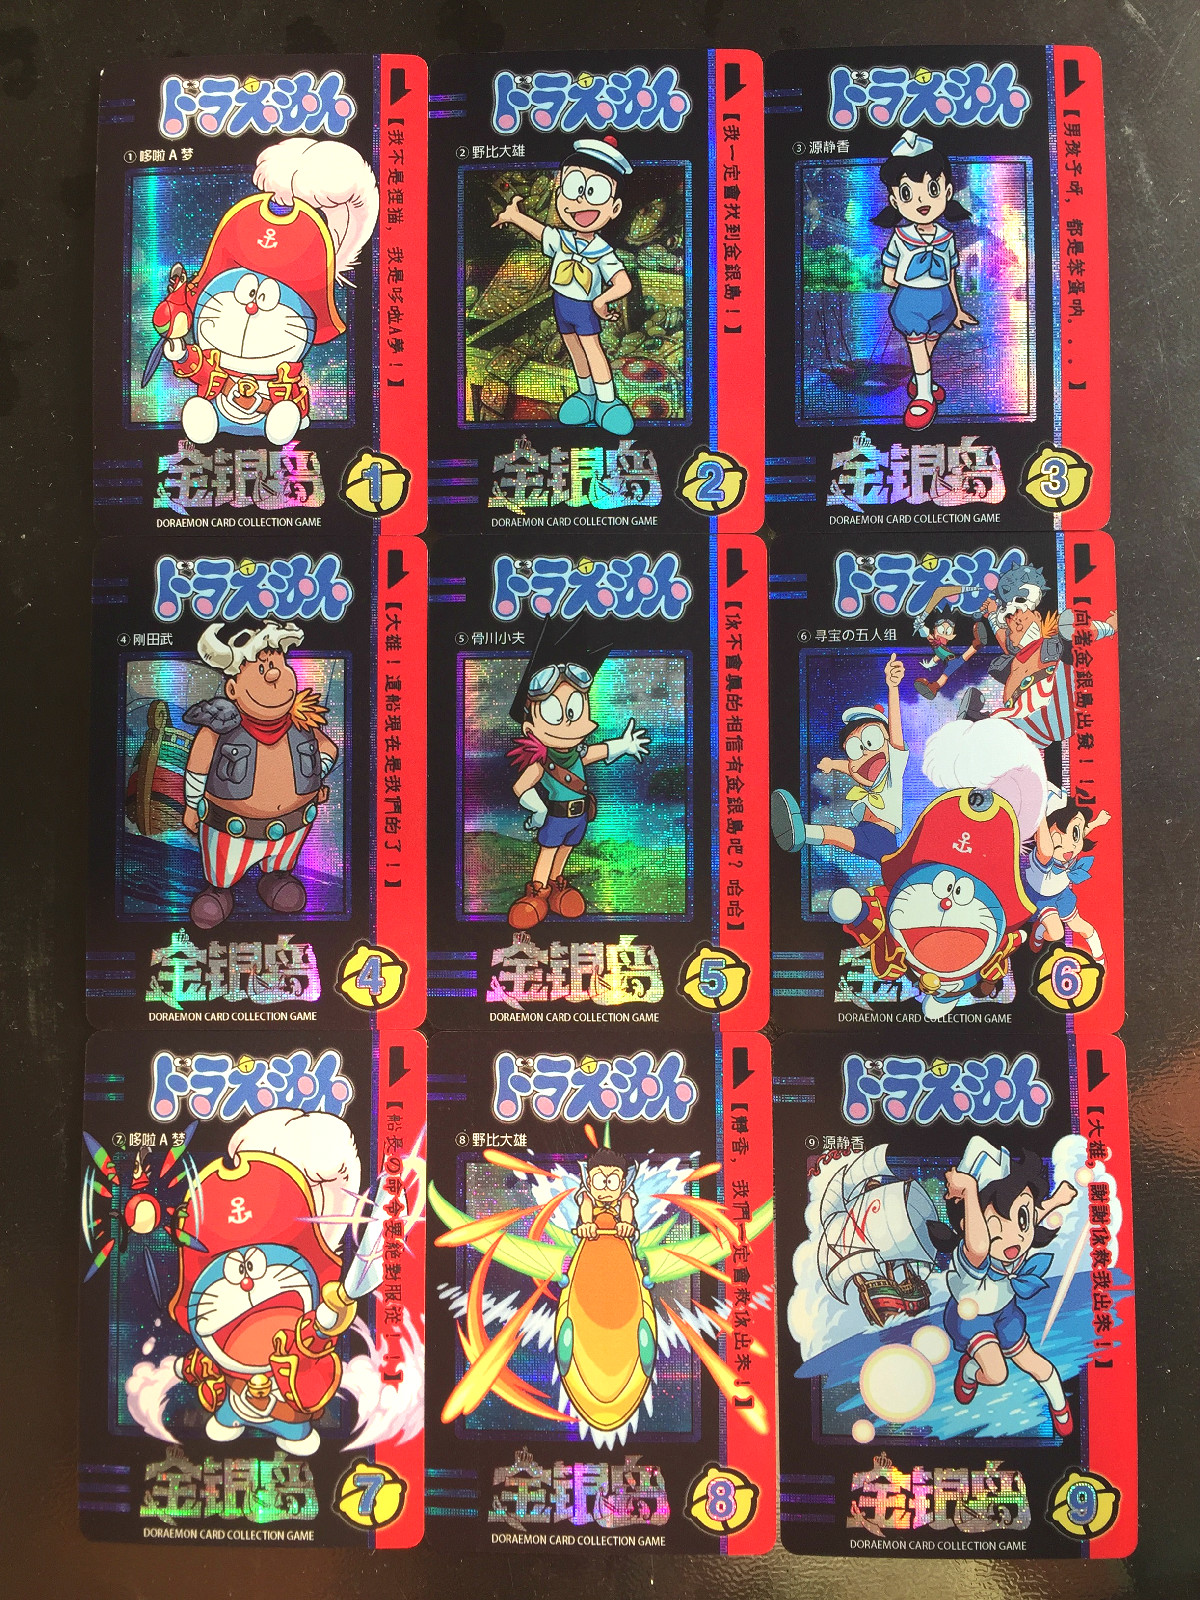 18pcs/set Doraemon Theatrical Version Of Treasure Island Toys Hobbies Hobby Collectibles Game Collection Anime Cards